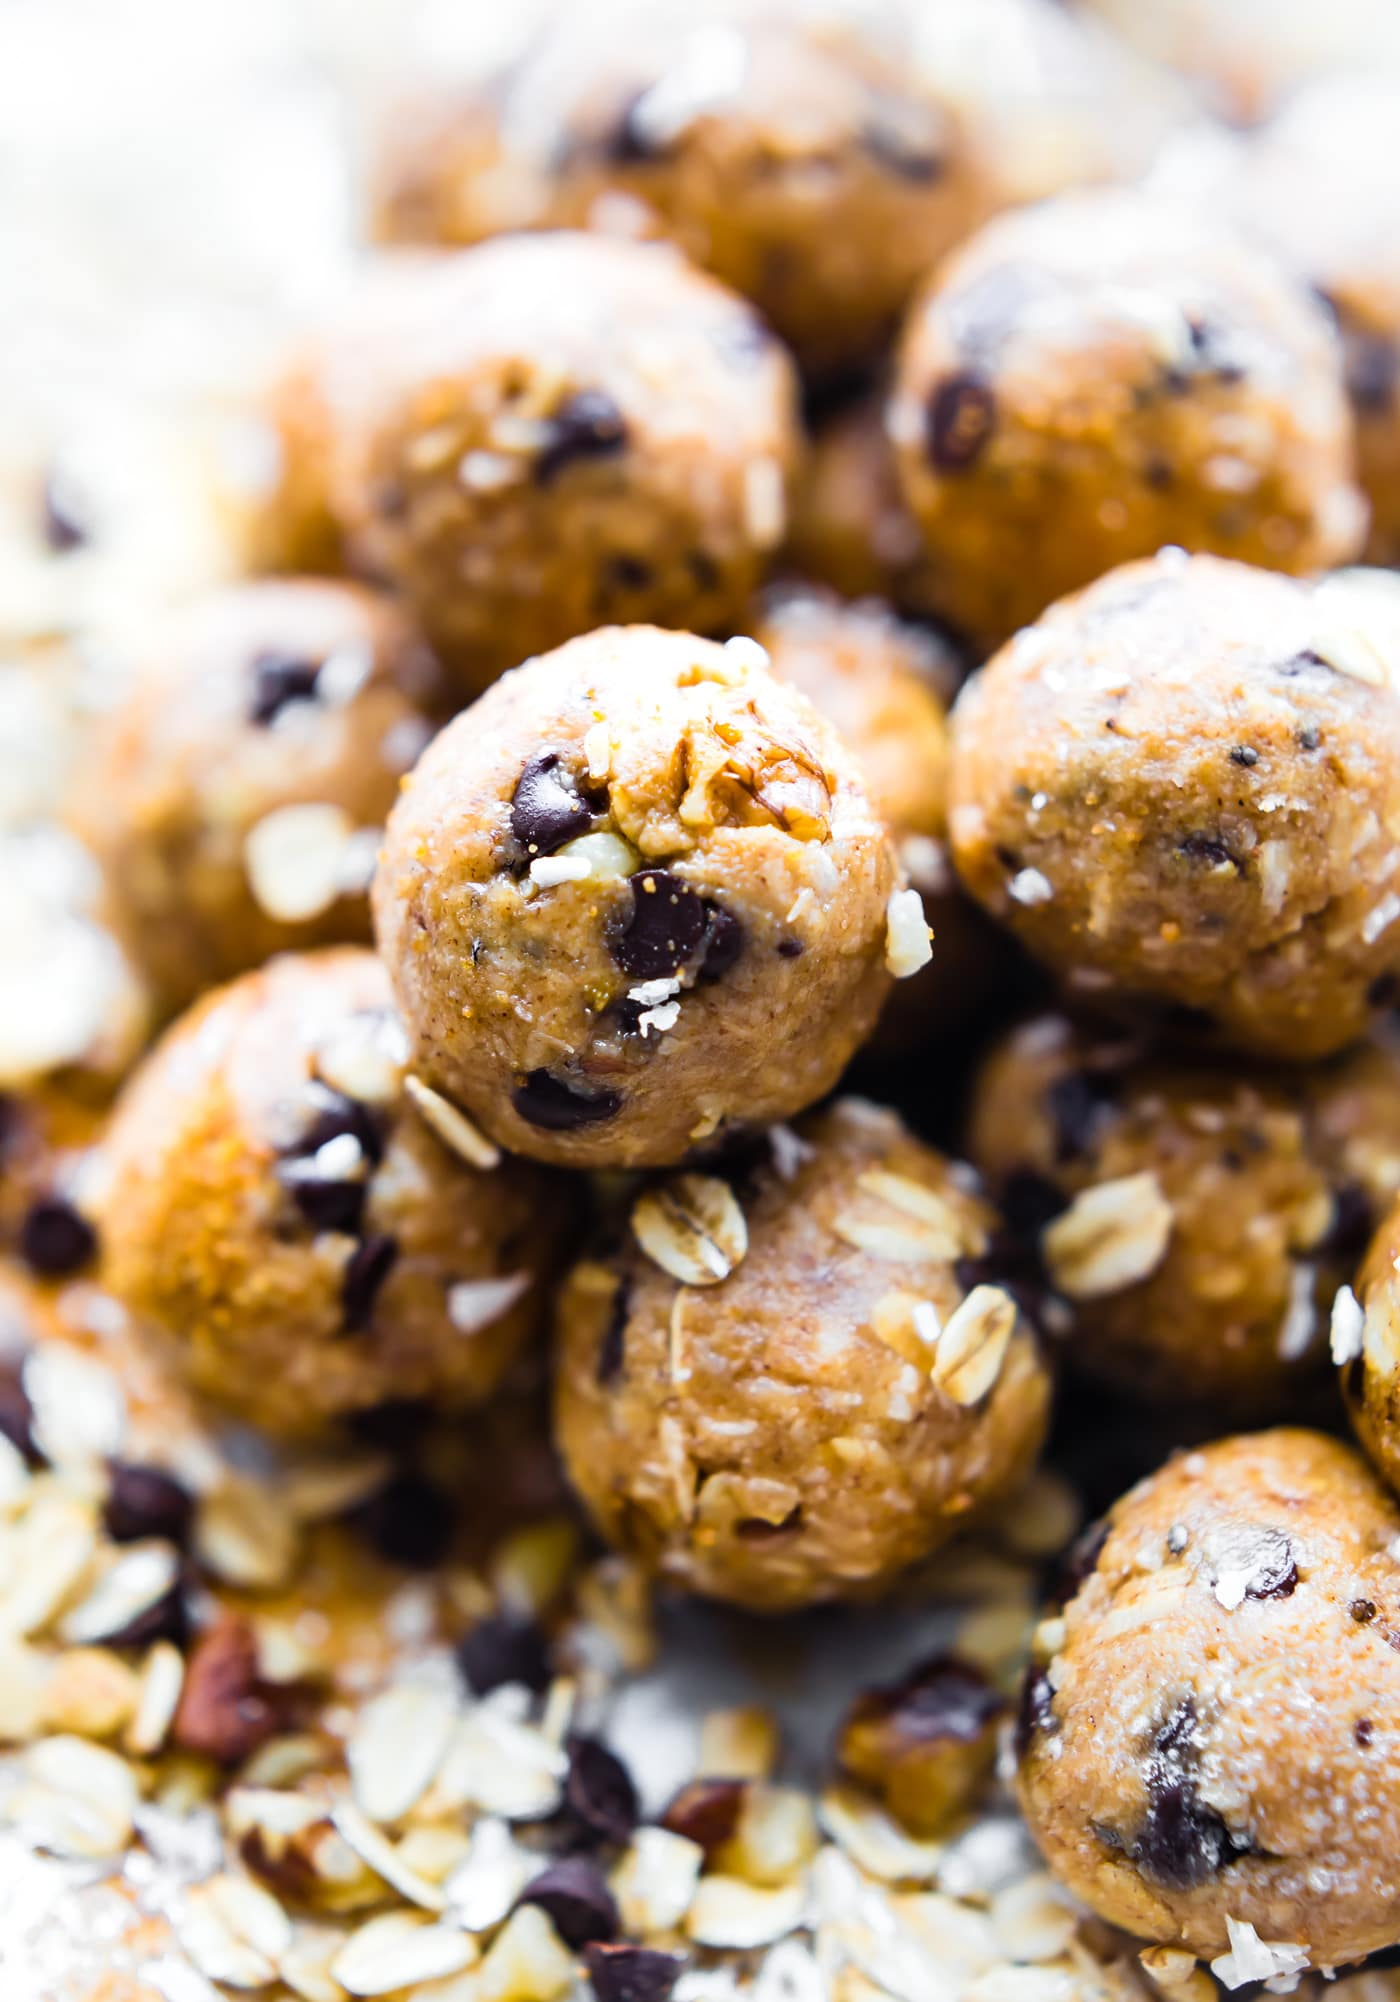 Cowboy Cookies in a no bake ENERGY BITES form! Yes, the best of both worlds. No baking, vegan energy bites that taste like cowboy cookies! Soft, chewy, and loaded with a variety of flavors. Gluten free!